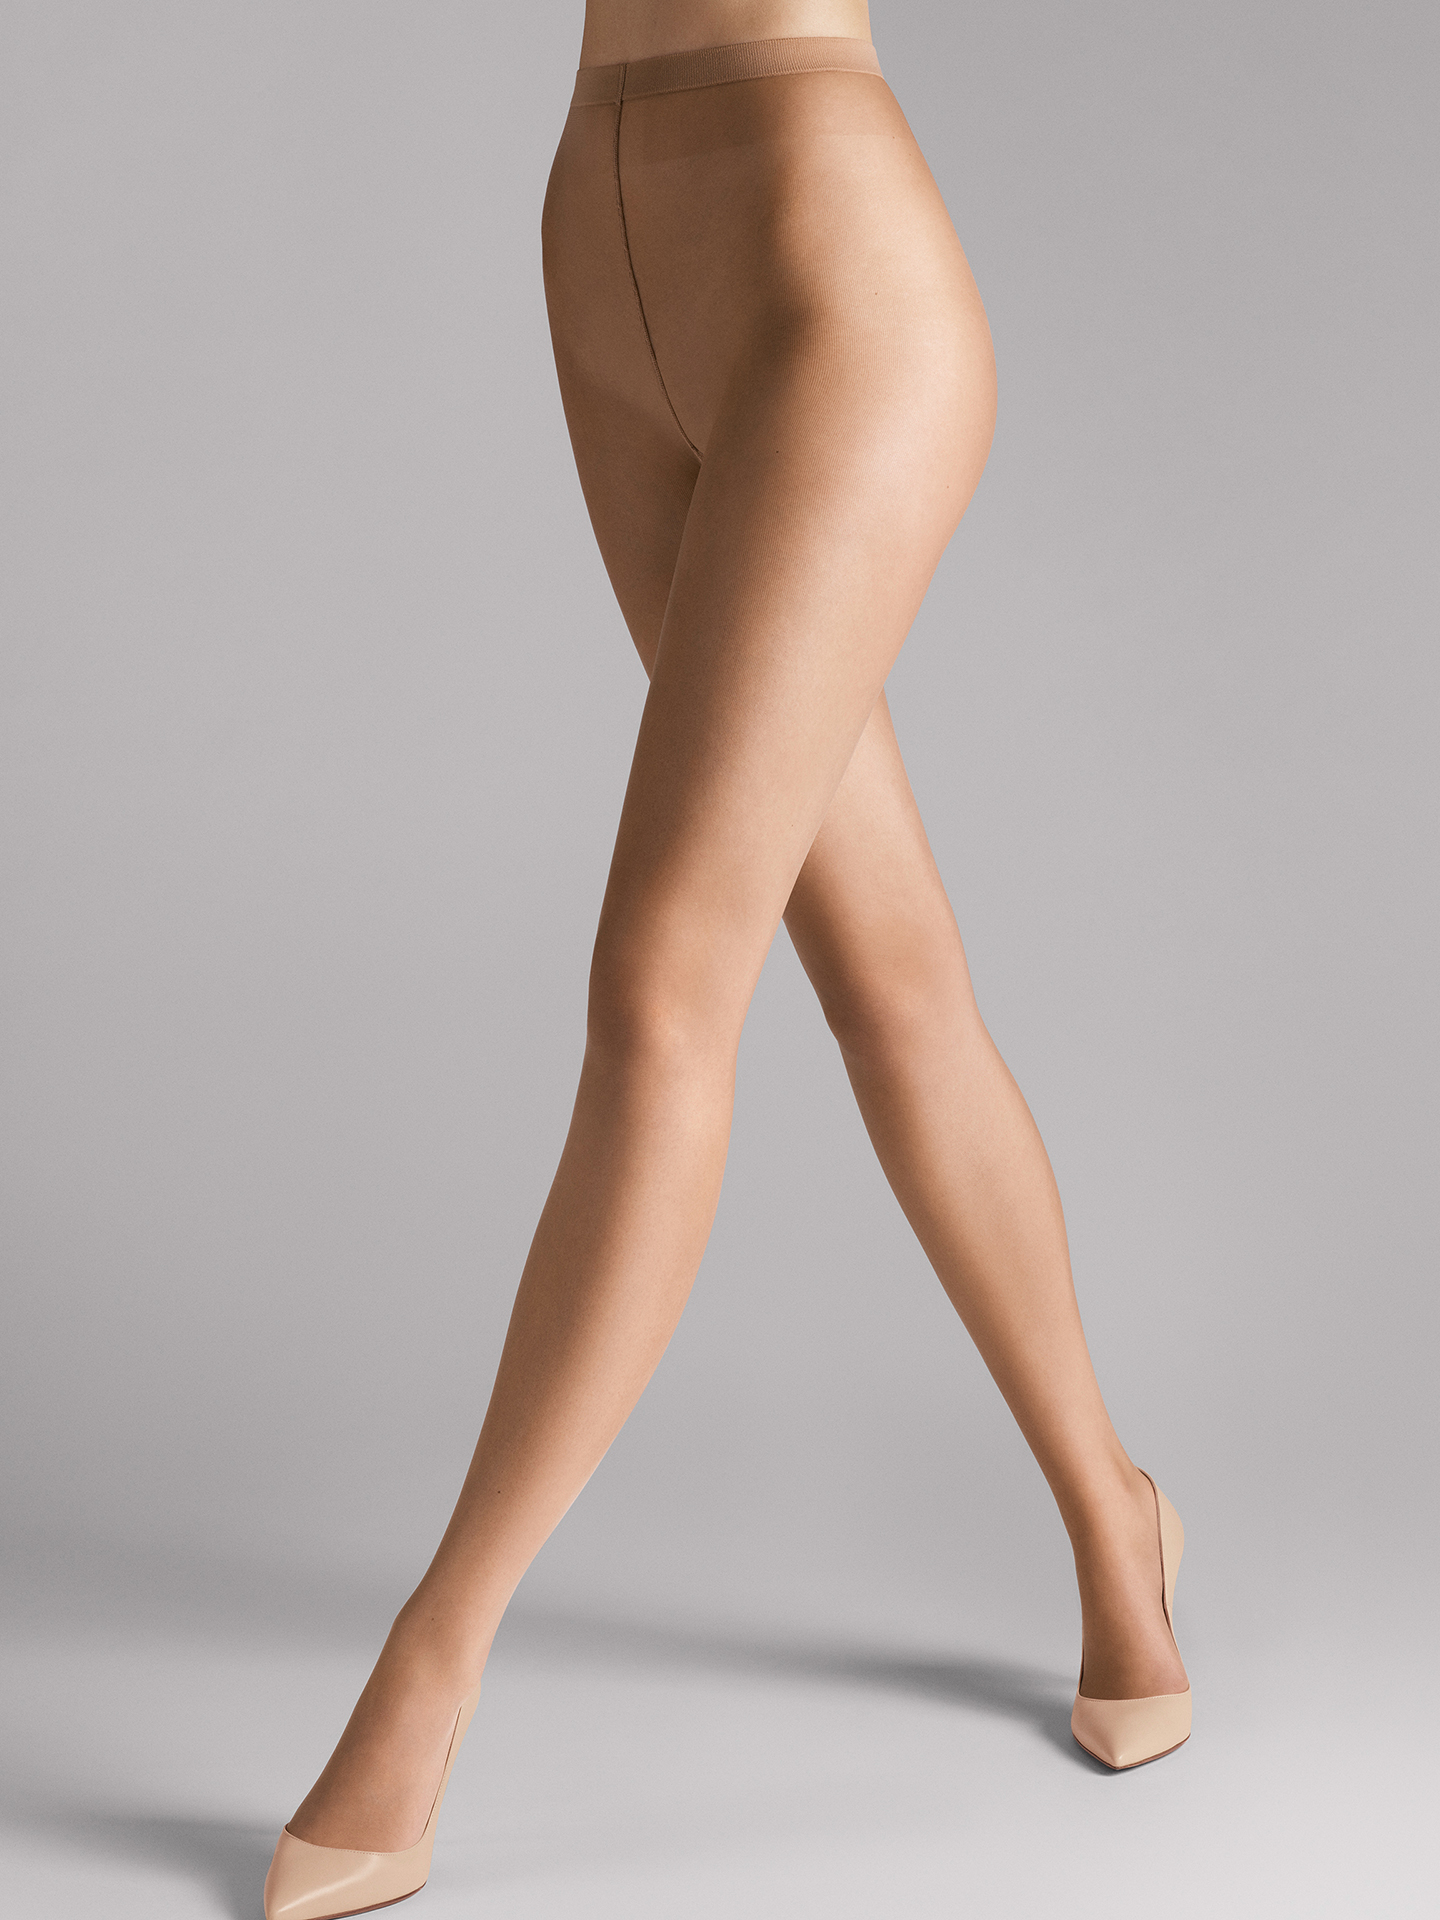 Wolford Apparel & Accessories > Clothing > Collant Naked 8 - 4365 - XS